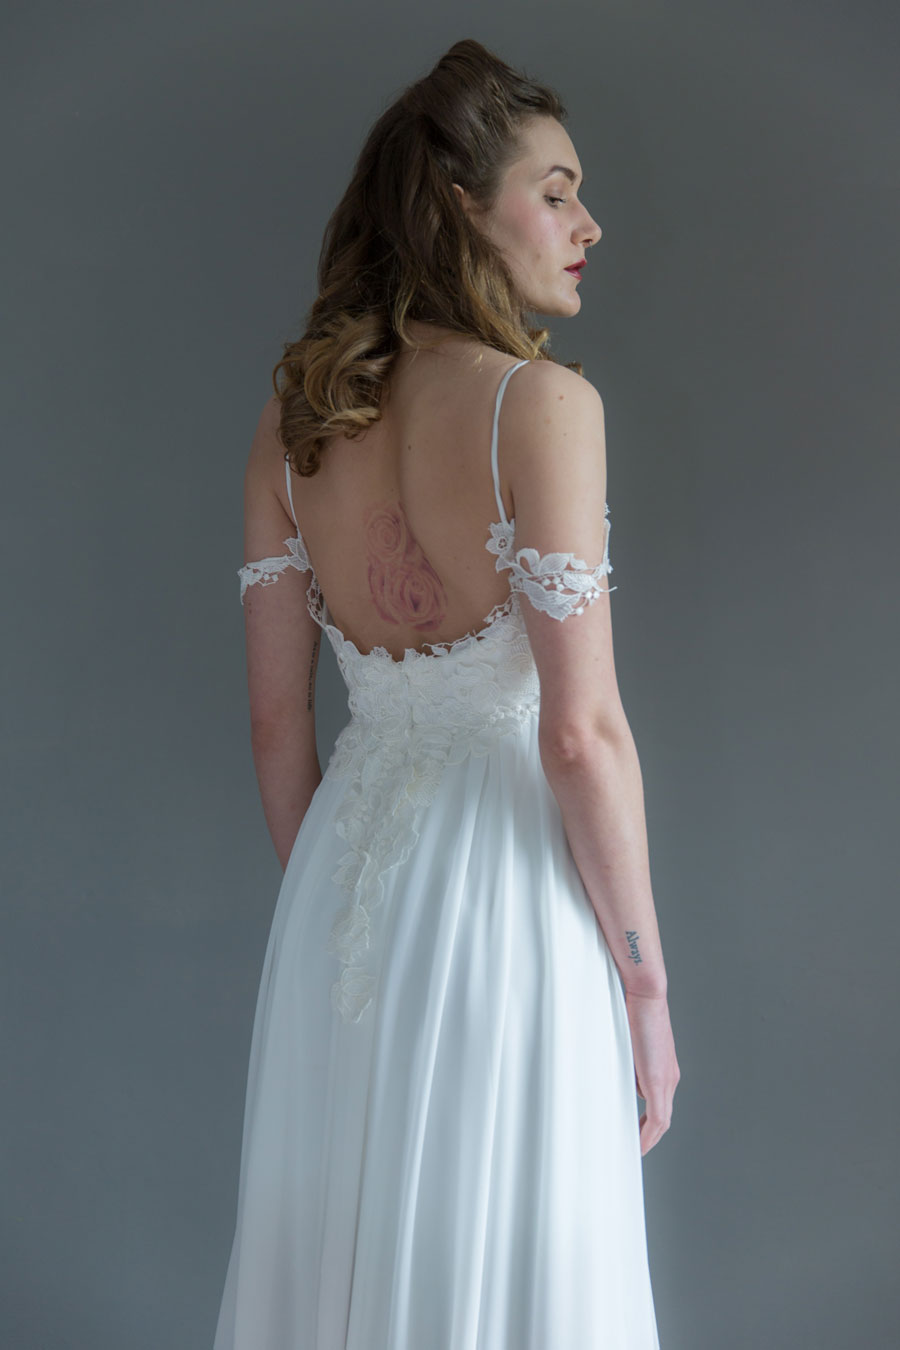 Quirky Wedding Dresses For Non-Traditional Brides- Lucy Can't Dance0010